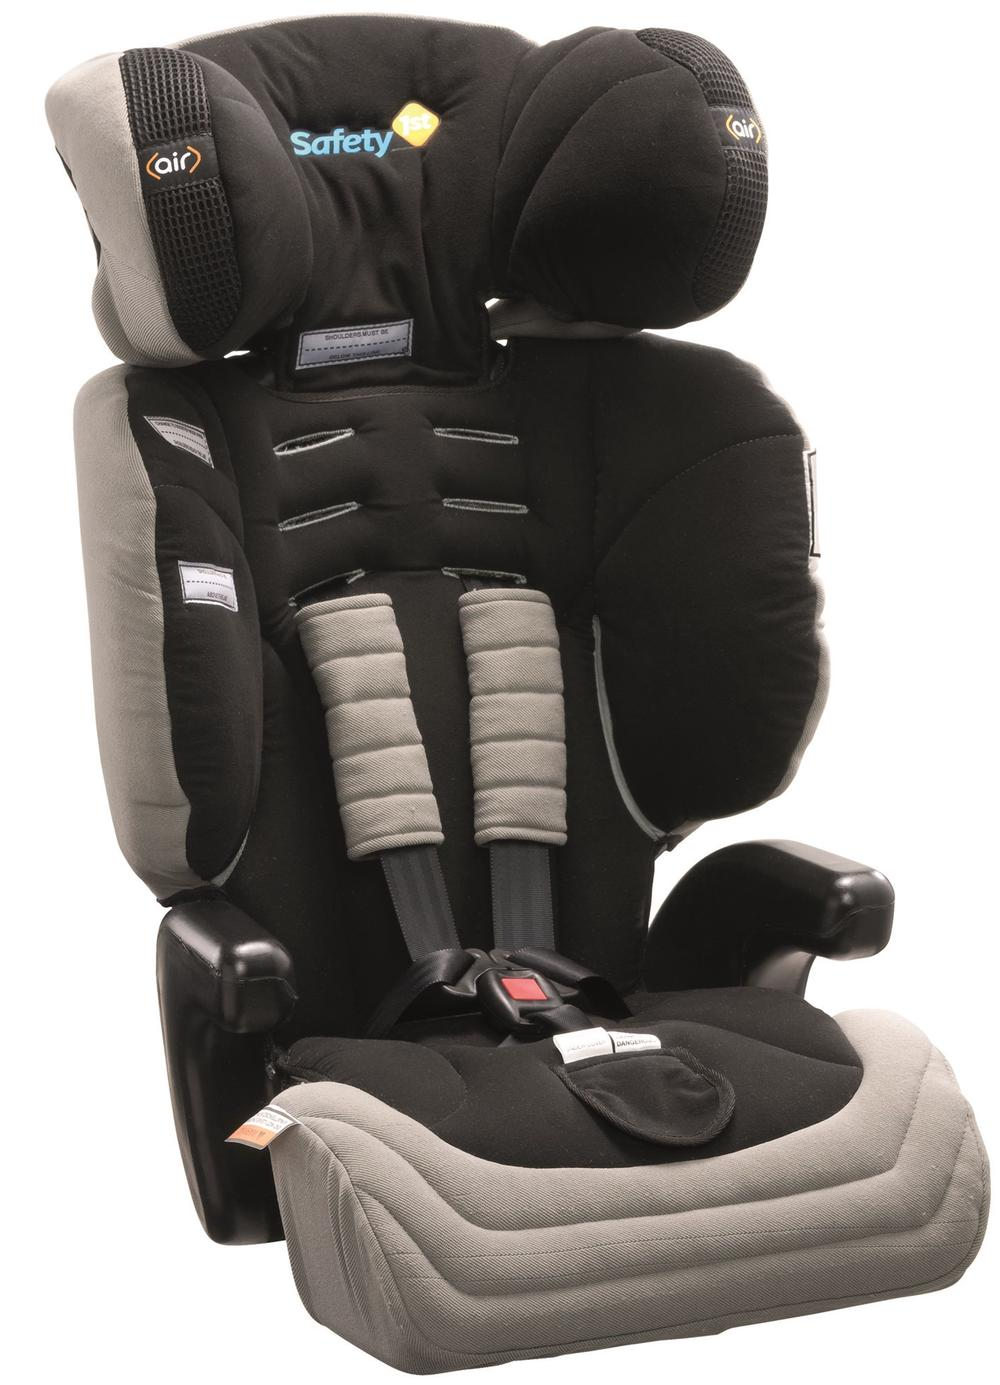 safety 1st custodian plus convertible car seat with air protect technology 6 months 4 years. Black Bedroom Furniture Sets. Home Design Ideas